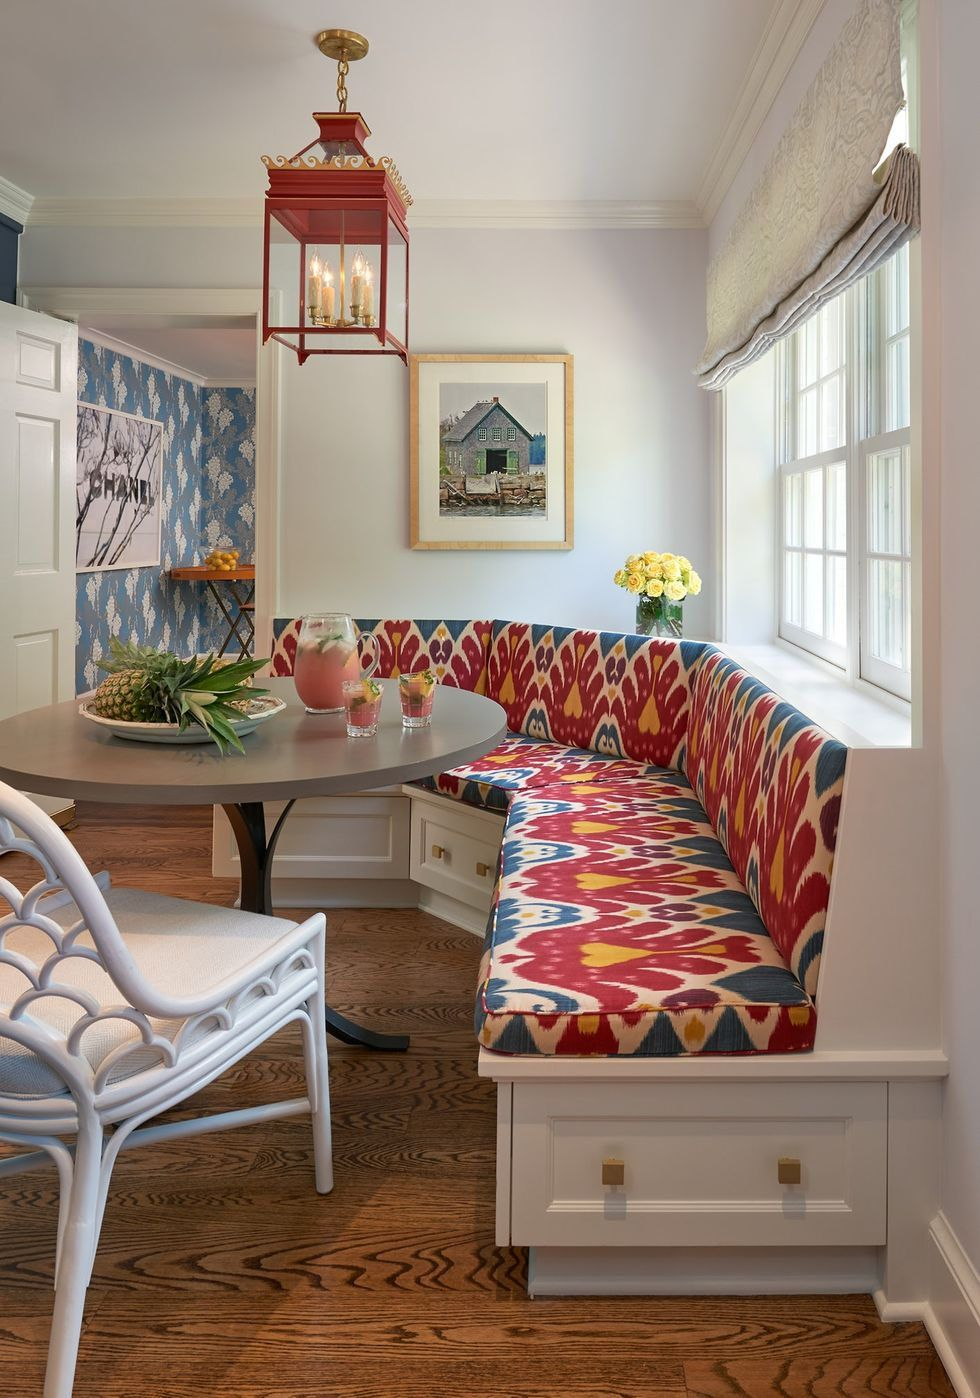 These Beautiful Banquettes Will Make You Rethink Your Whole Dining Setup